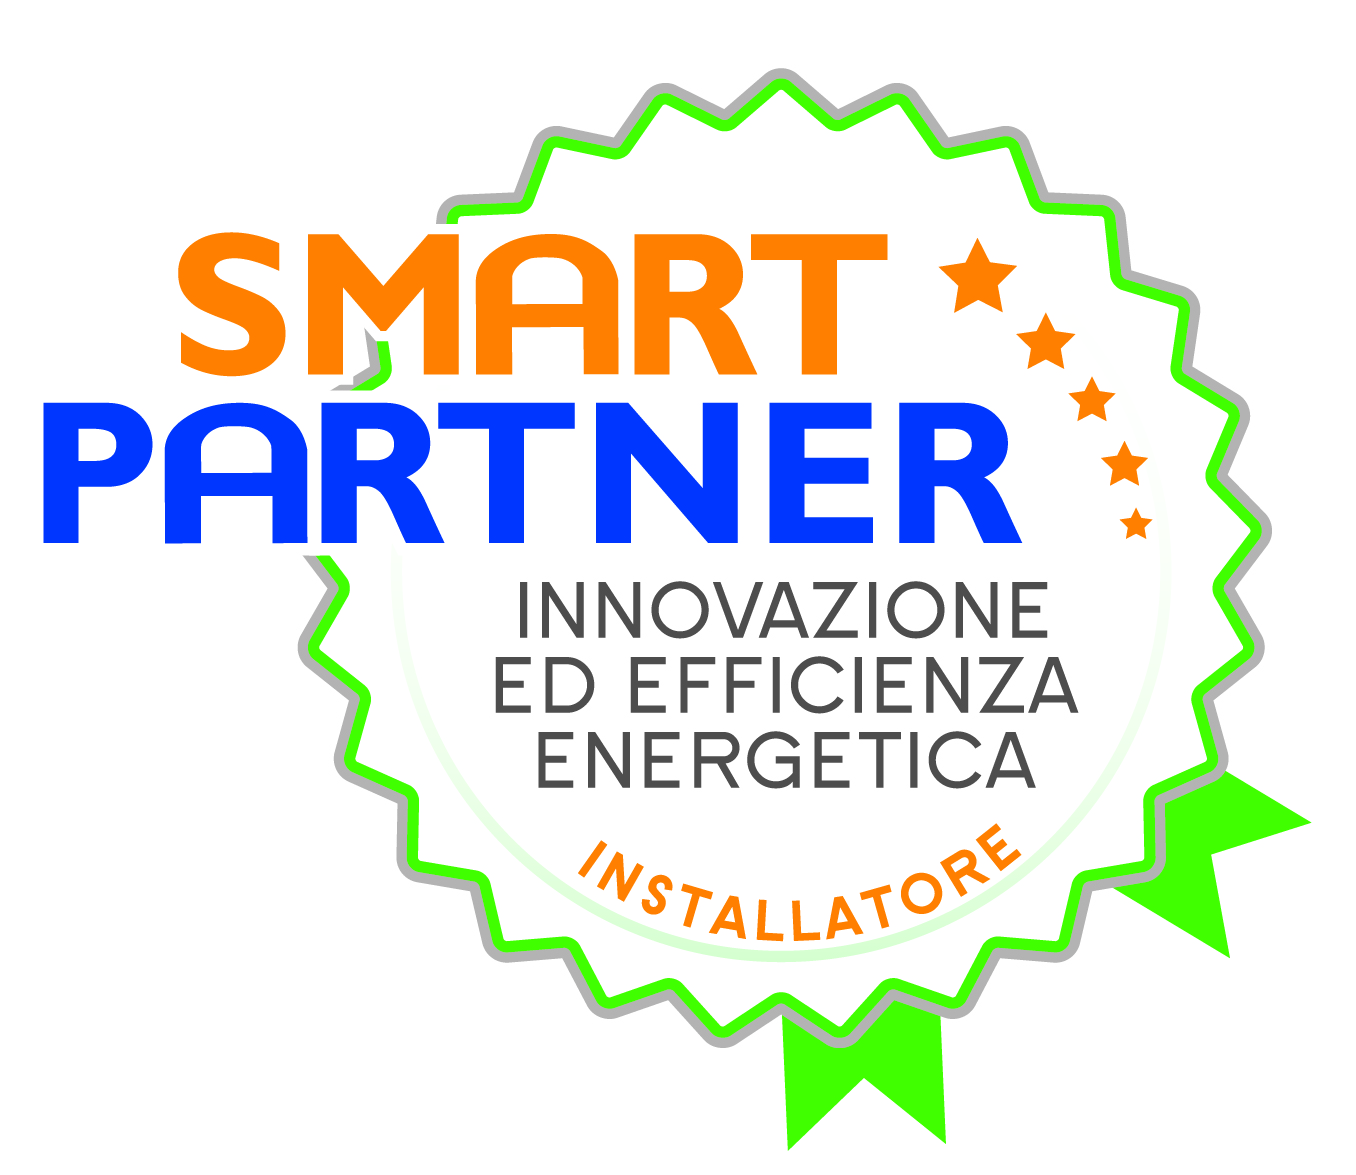 smart-partner-UFFICIALE - soetech.it